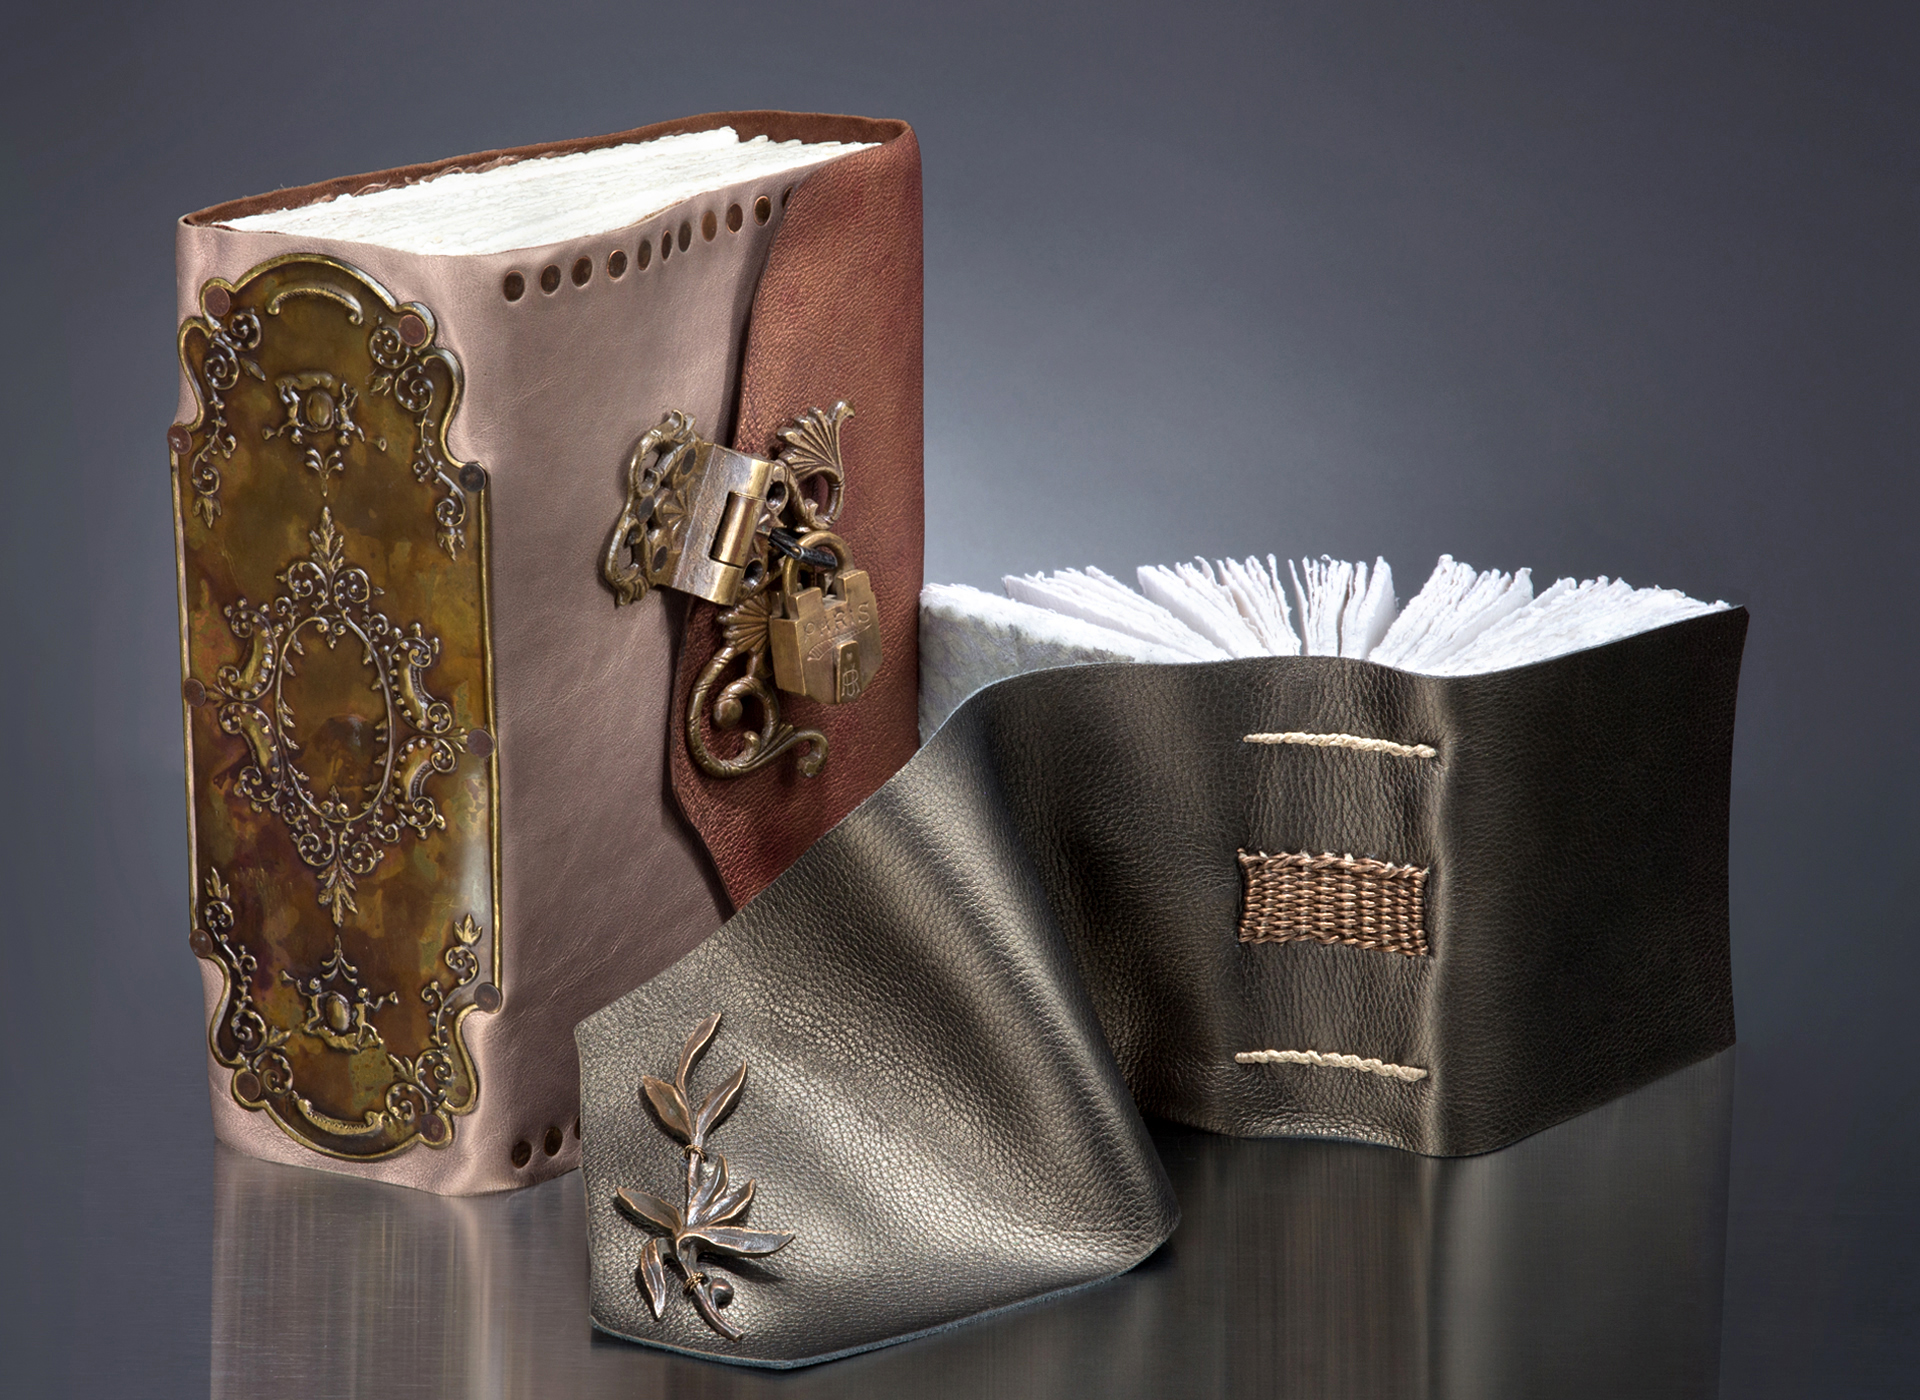 Iona Handcrafted Books - handmade leather journals